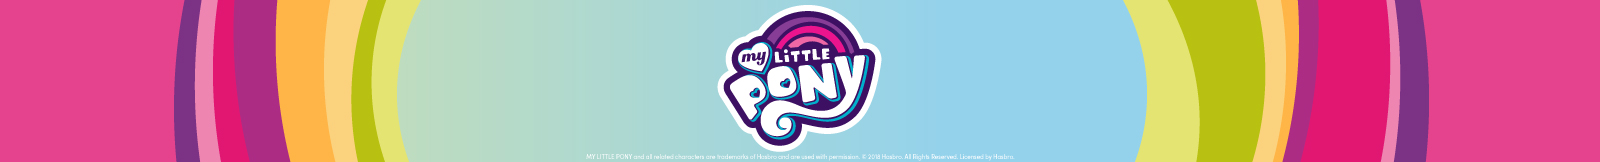 My Little Pony - mlp - My Little Pony stuffed animal